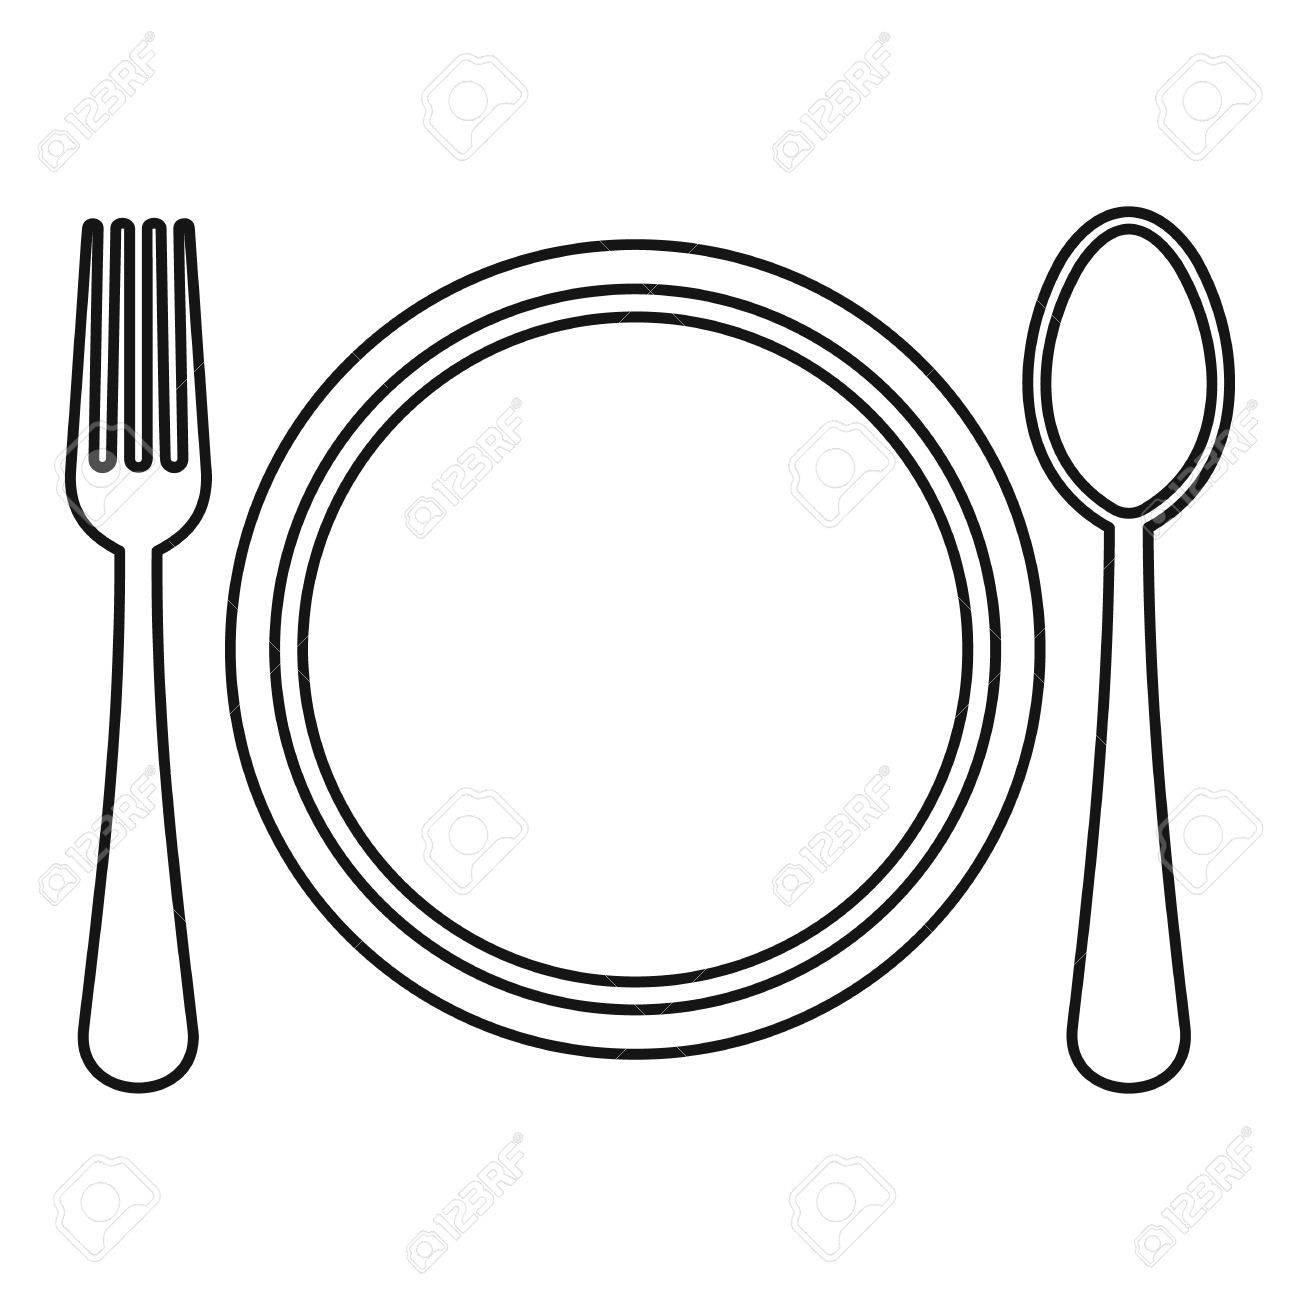 plate spoon and fork icon outline illustration of plate spoon rh 123rf com